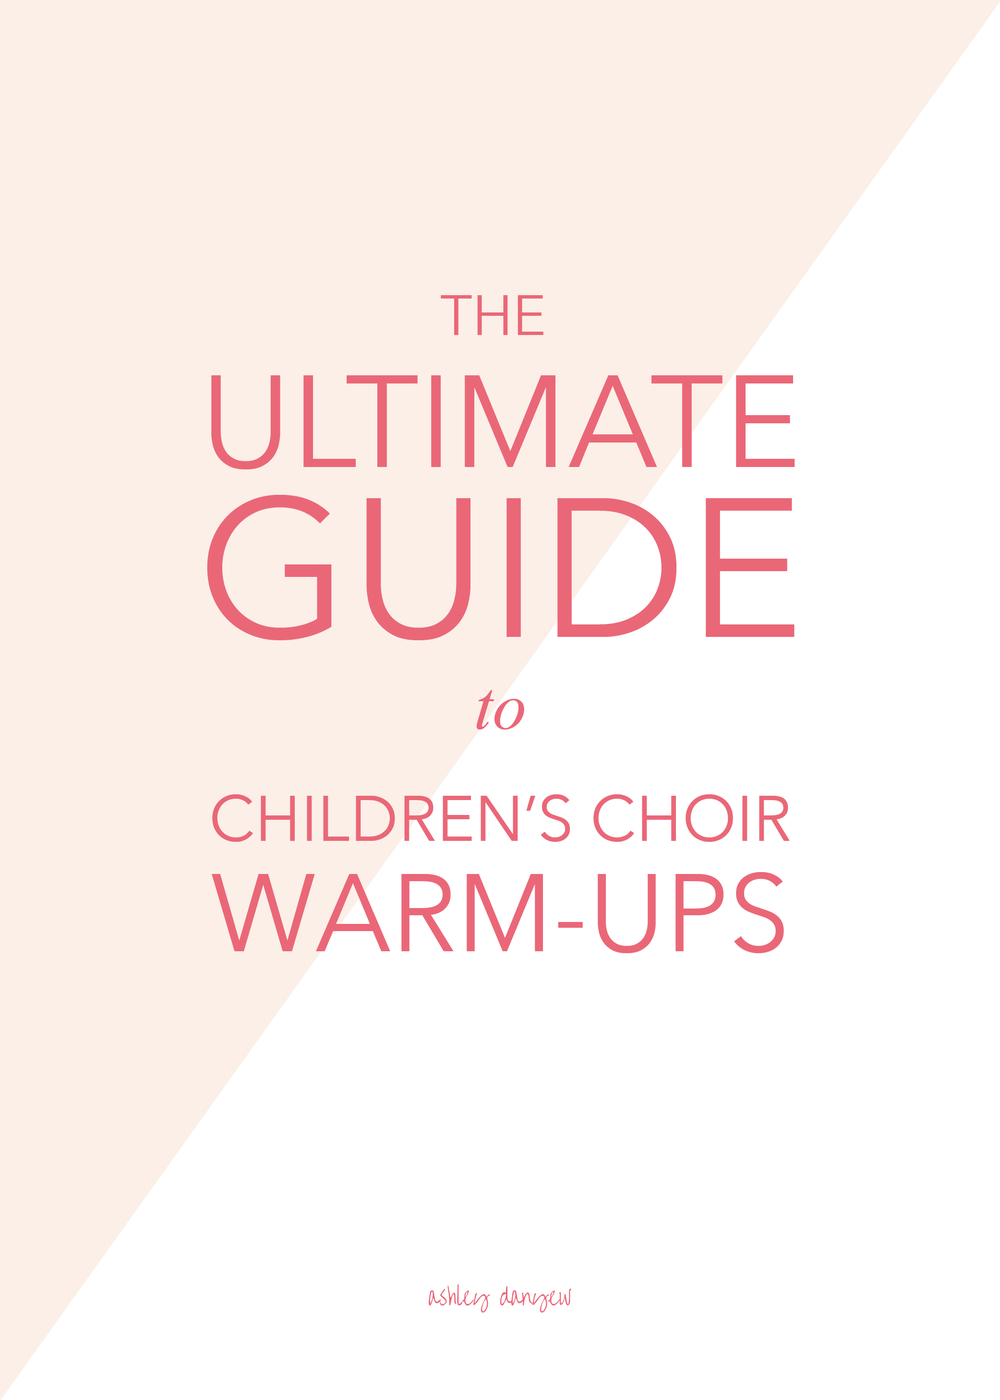 Copy of The Ultimate Guide to Children's Choir Warm-Ups